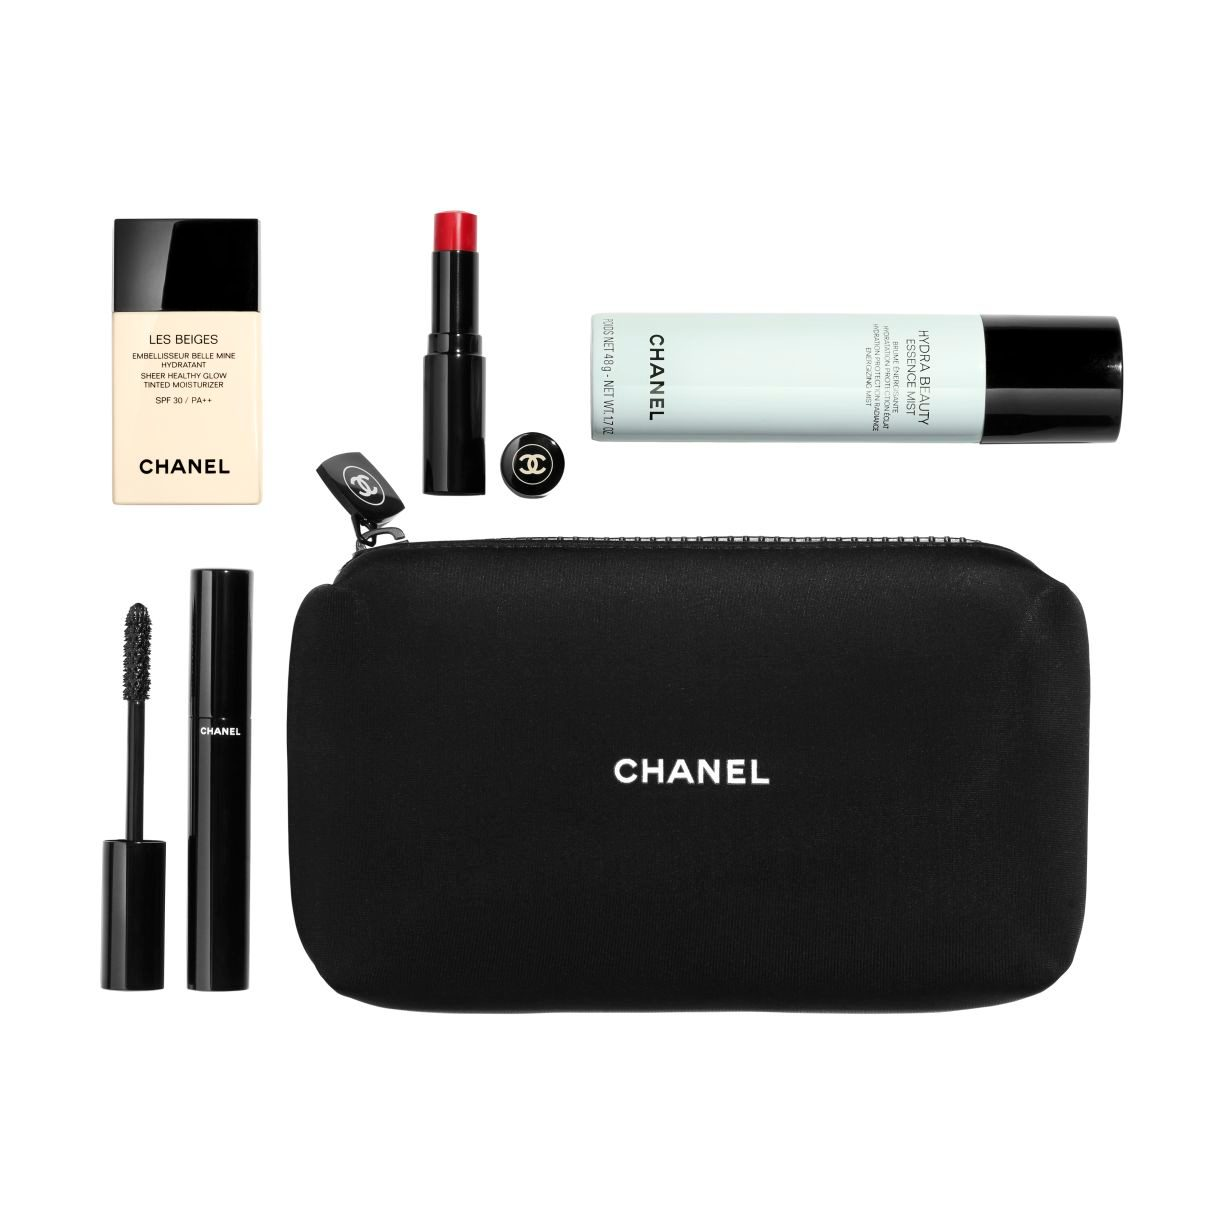 SET SPORT DE CHANEL WORKOUT BEAUTY ROUTINE ESSENTIALS MEDIUM